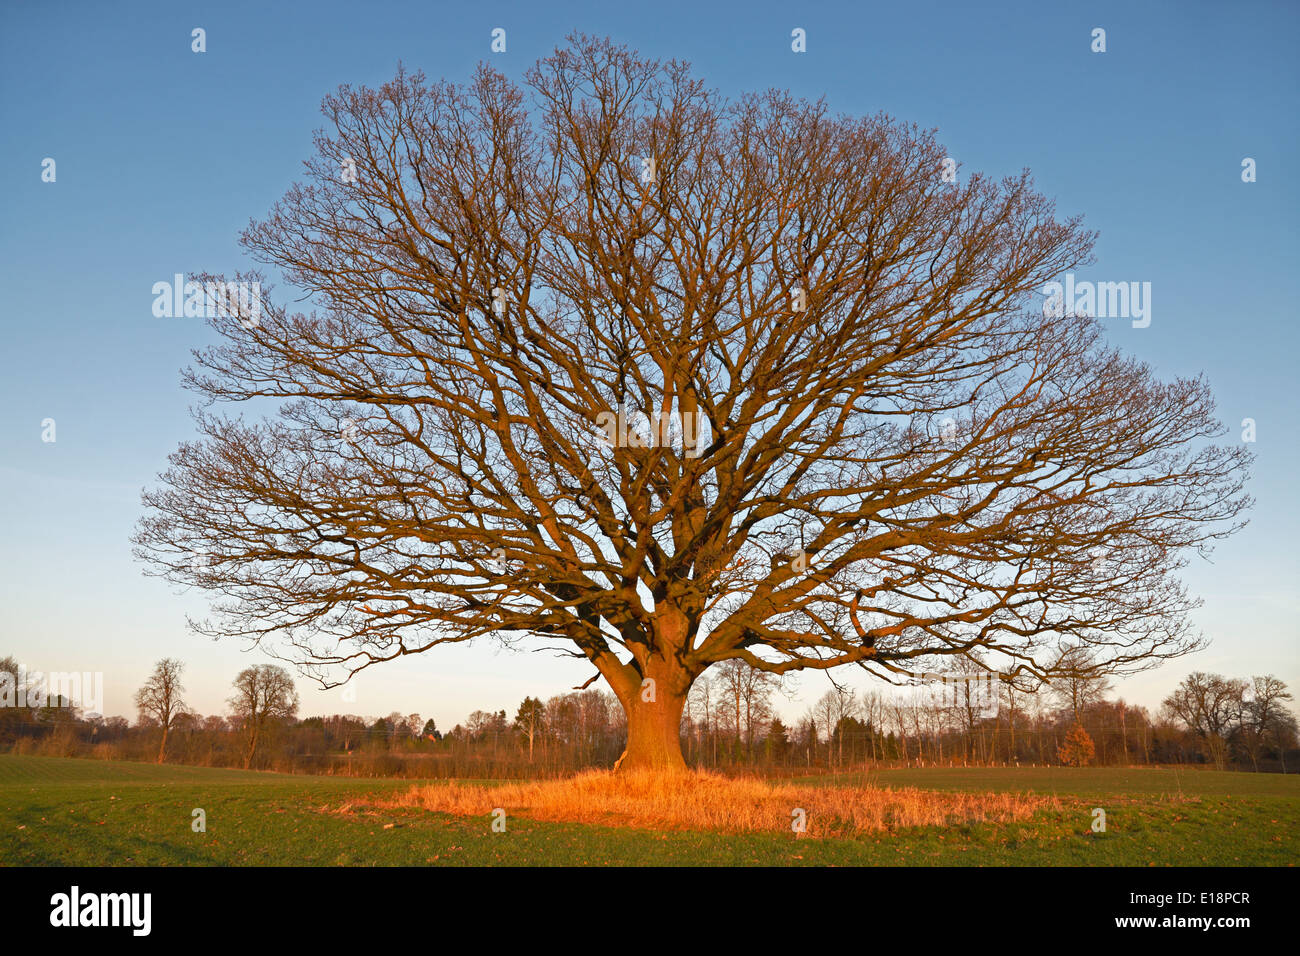 Big old oak tree (common oak, English oak, Quercus robur) with leafless branches against a blue winter afternoon Stock Photo